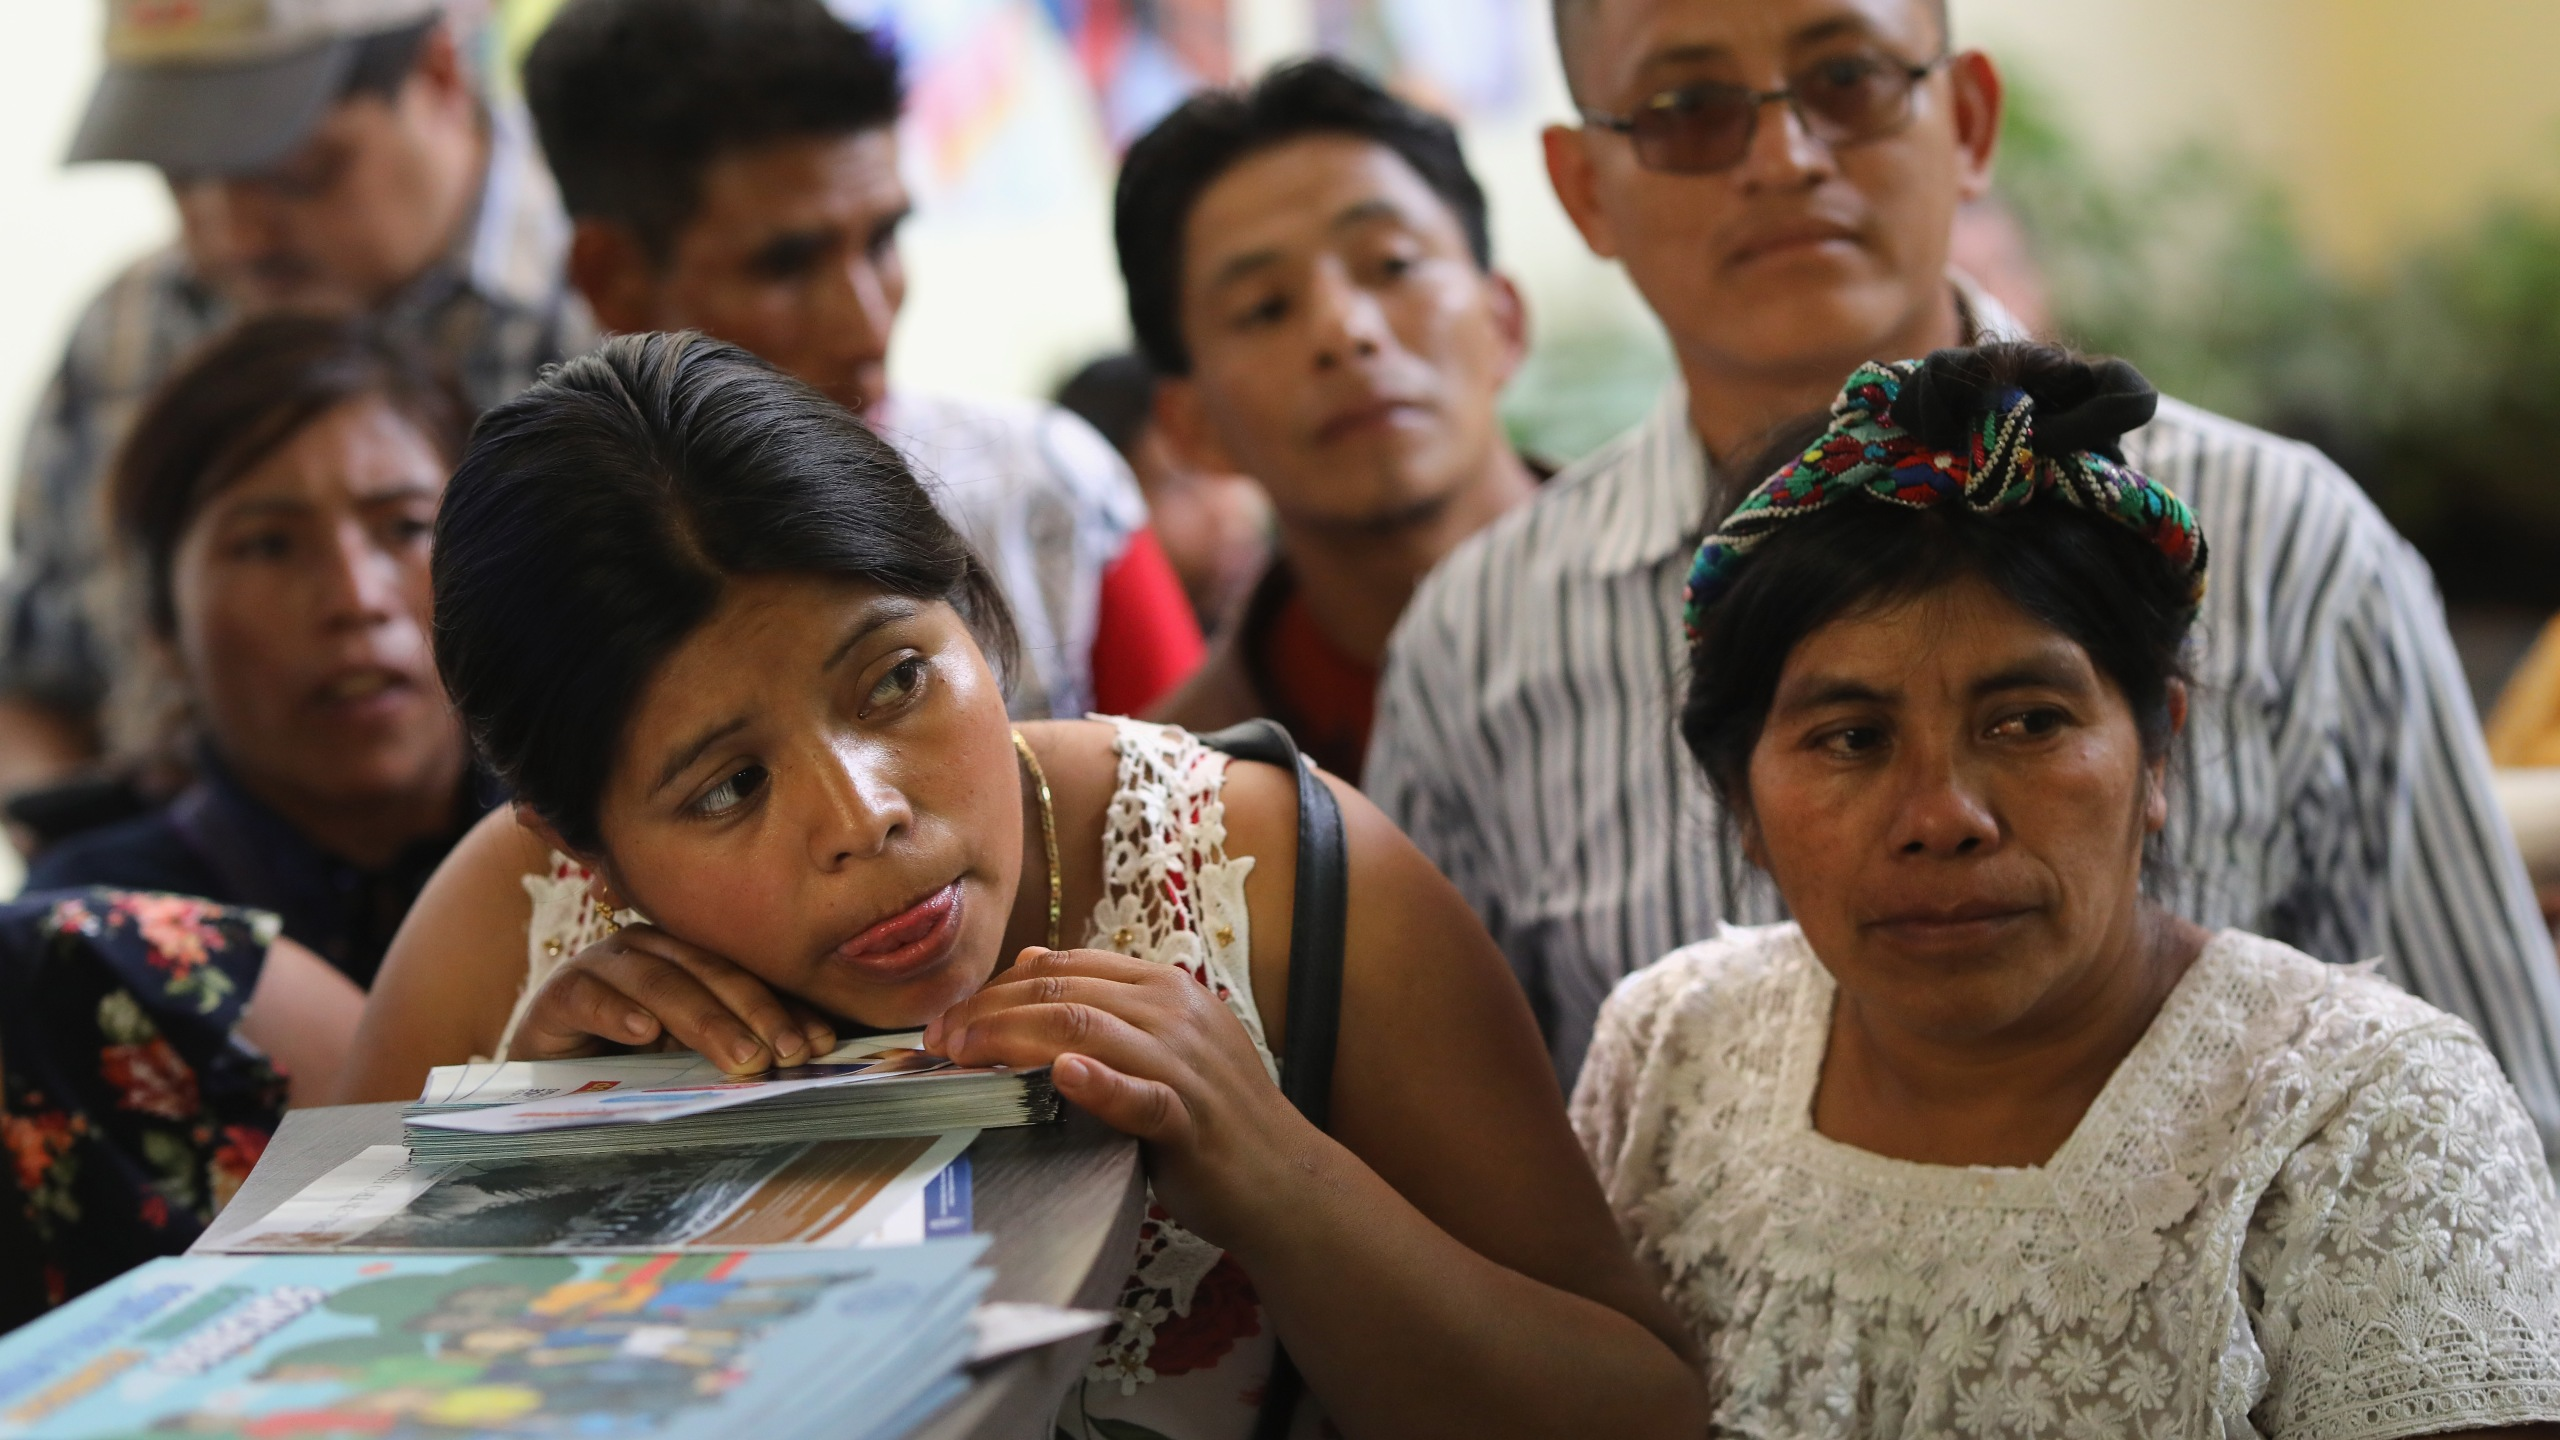 Families wait to embrace their children for the first time in months after being separated by U.S. border agents, Aug. 7, 2018, in Guatemala City, Guatemala. (Credit: John Moore / Getty Images)